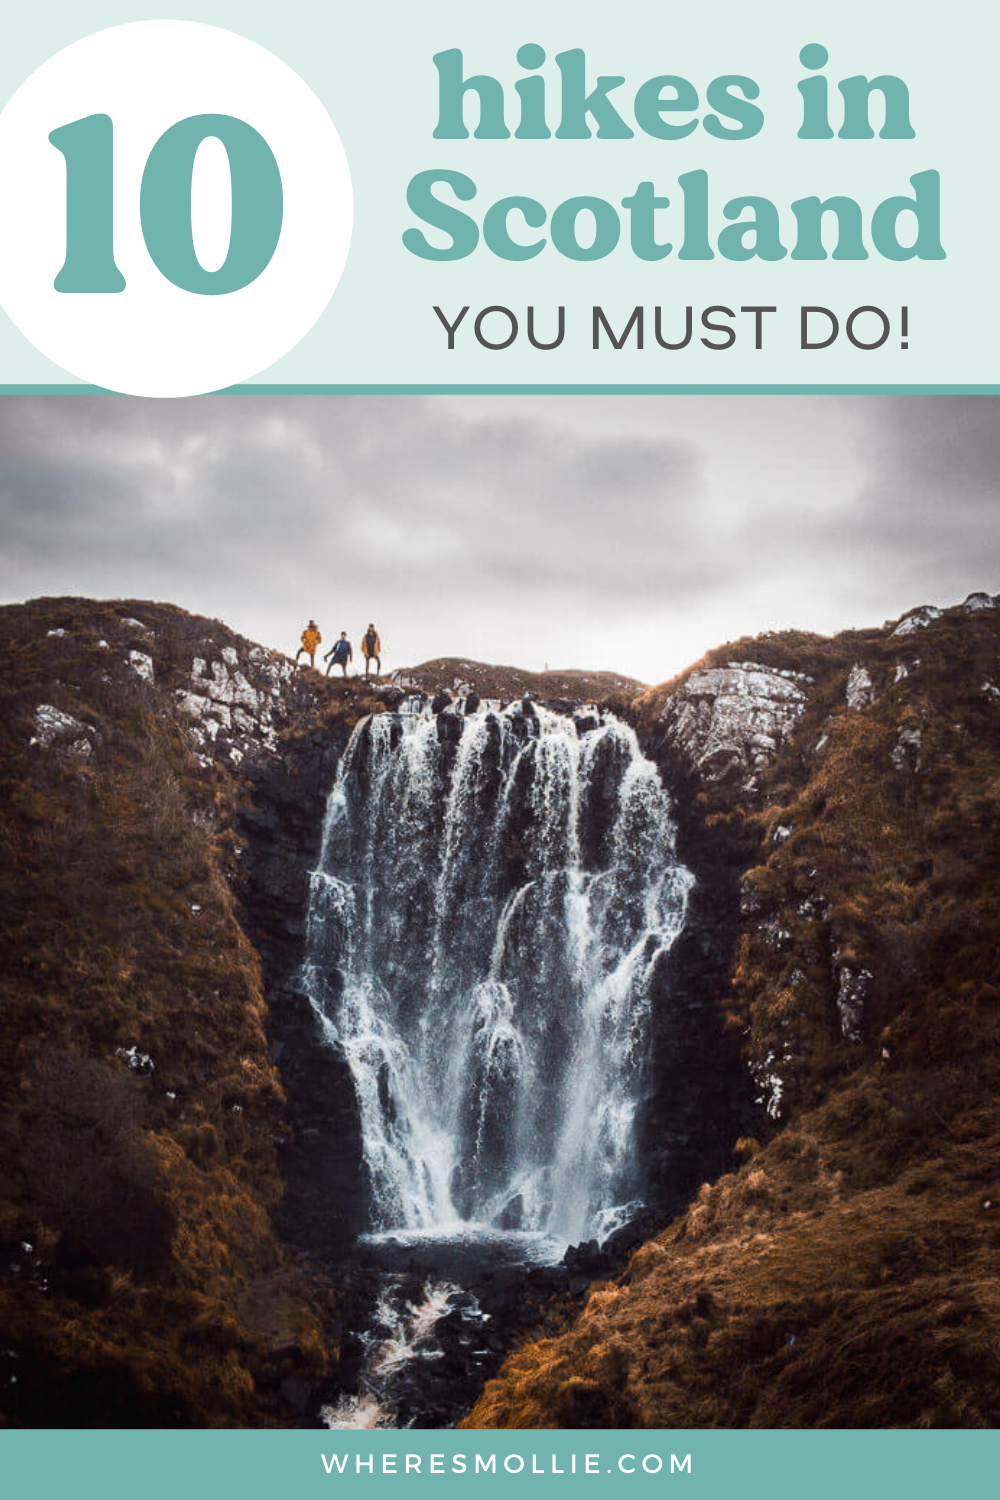 The best walks and hikes in Scotland